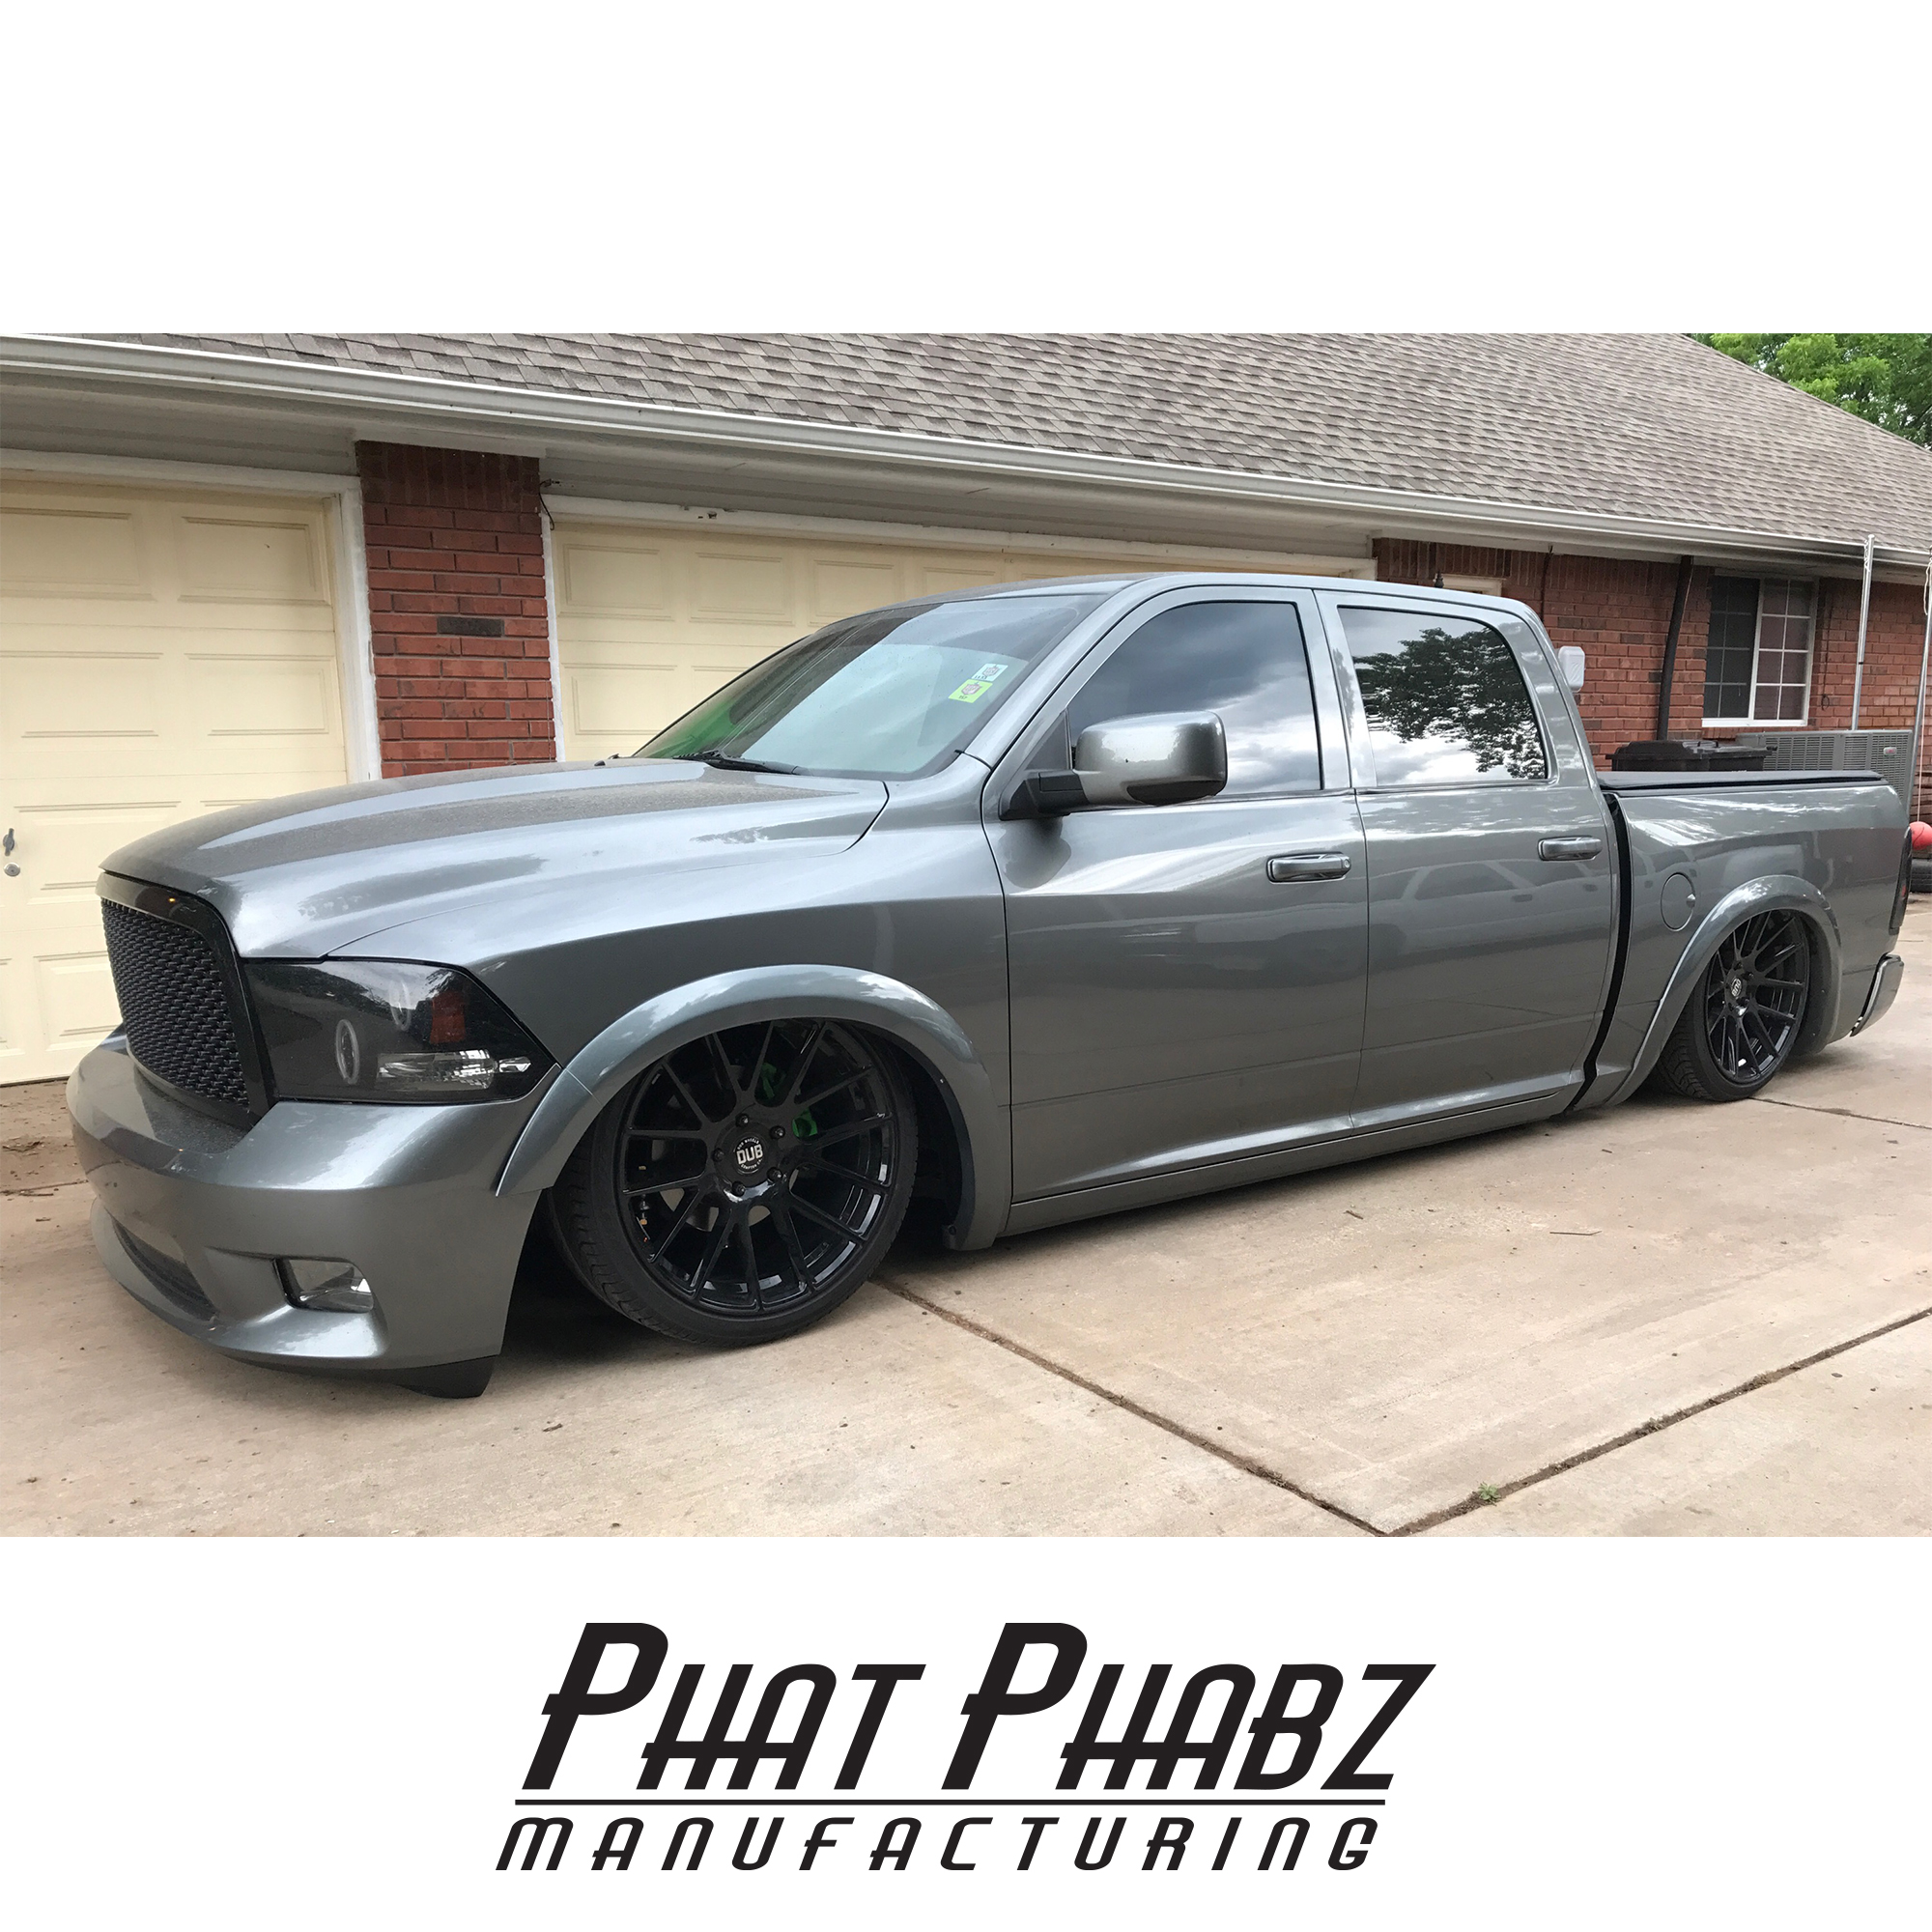 "PHA 1004 Phat Phabz 09'- 16' Dodge Ram Front Kit Features a 1"" Narrowed Tack Width, Moog Ball Joints, Monroe shocks, W/ Steering Kit made up of 3/4"" Chromoly Heims **will lat up to a 33"" tire** **Spindles will need to be sent to Phat Phabz for machine work**"